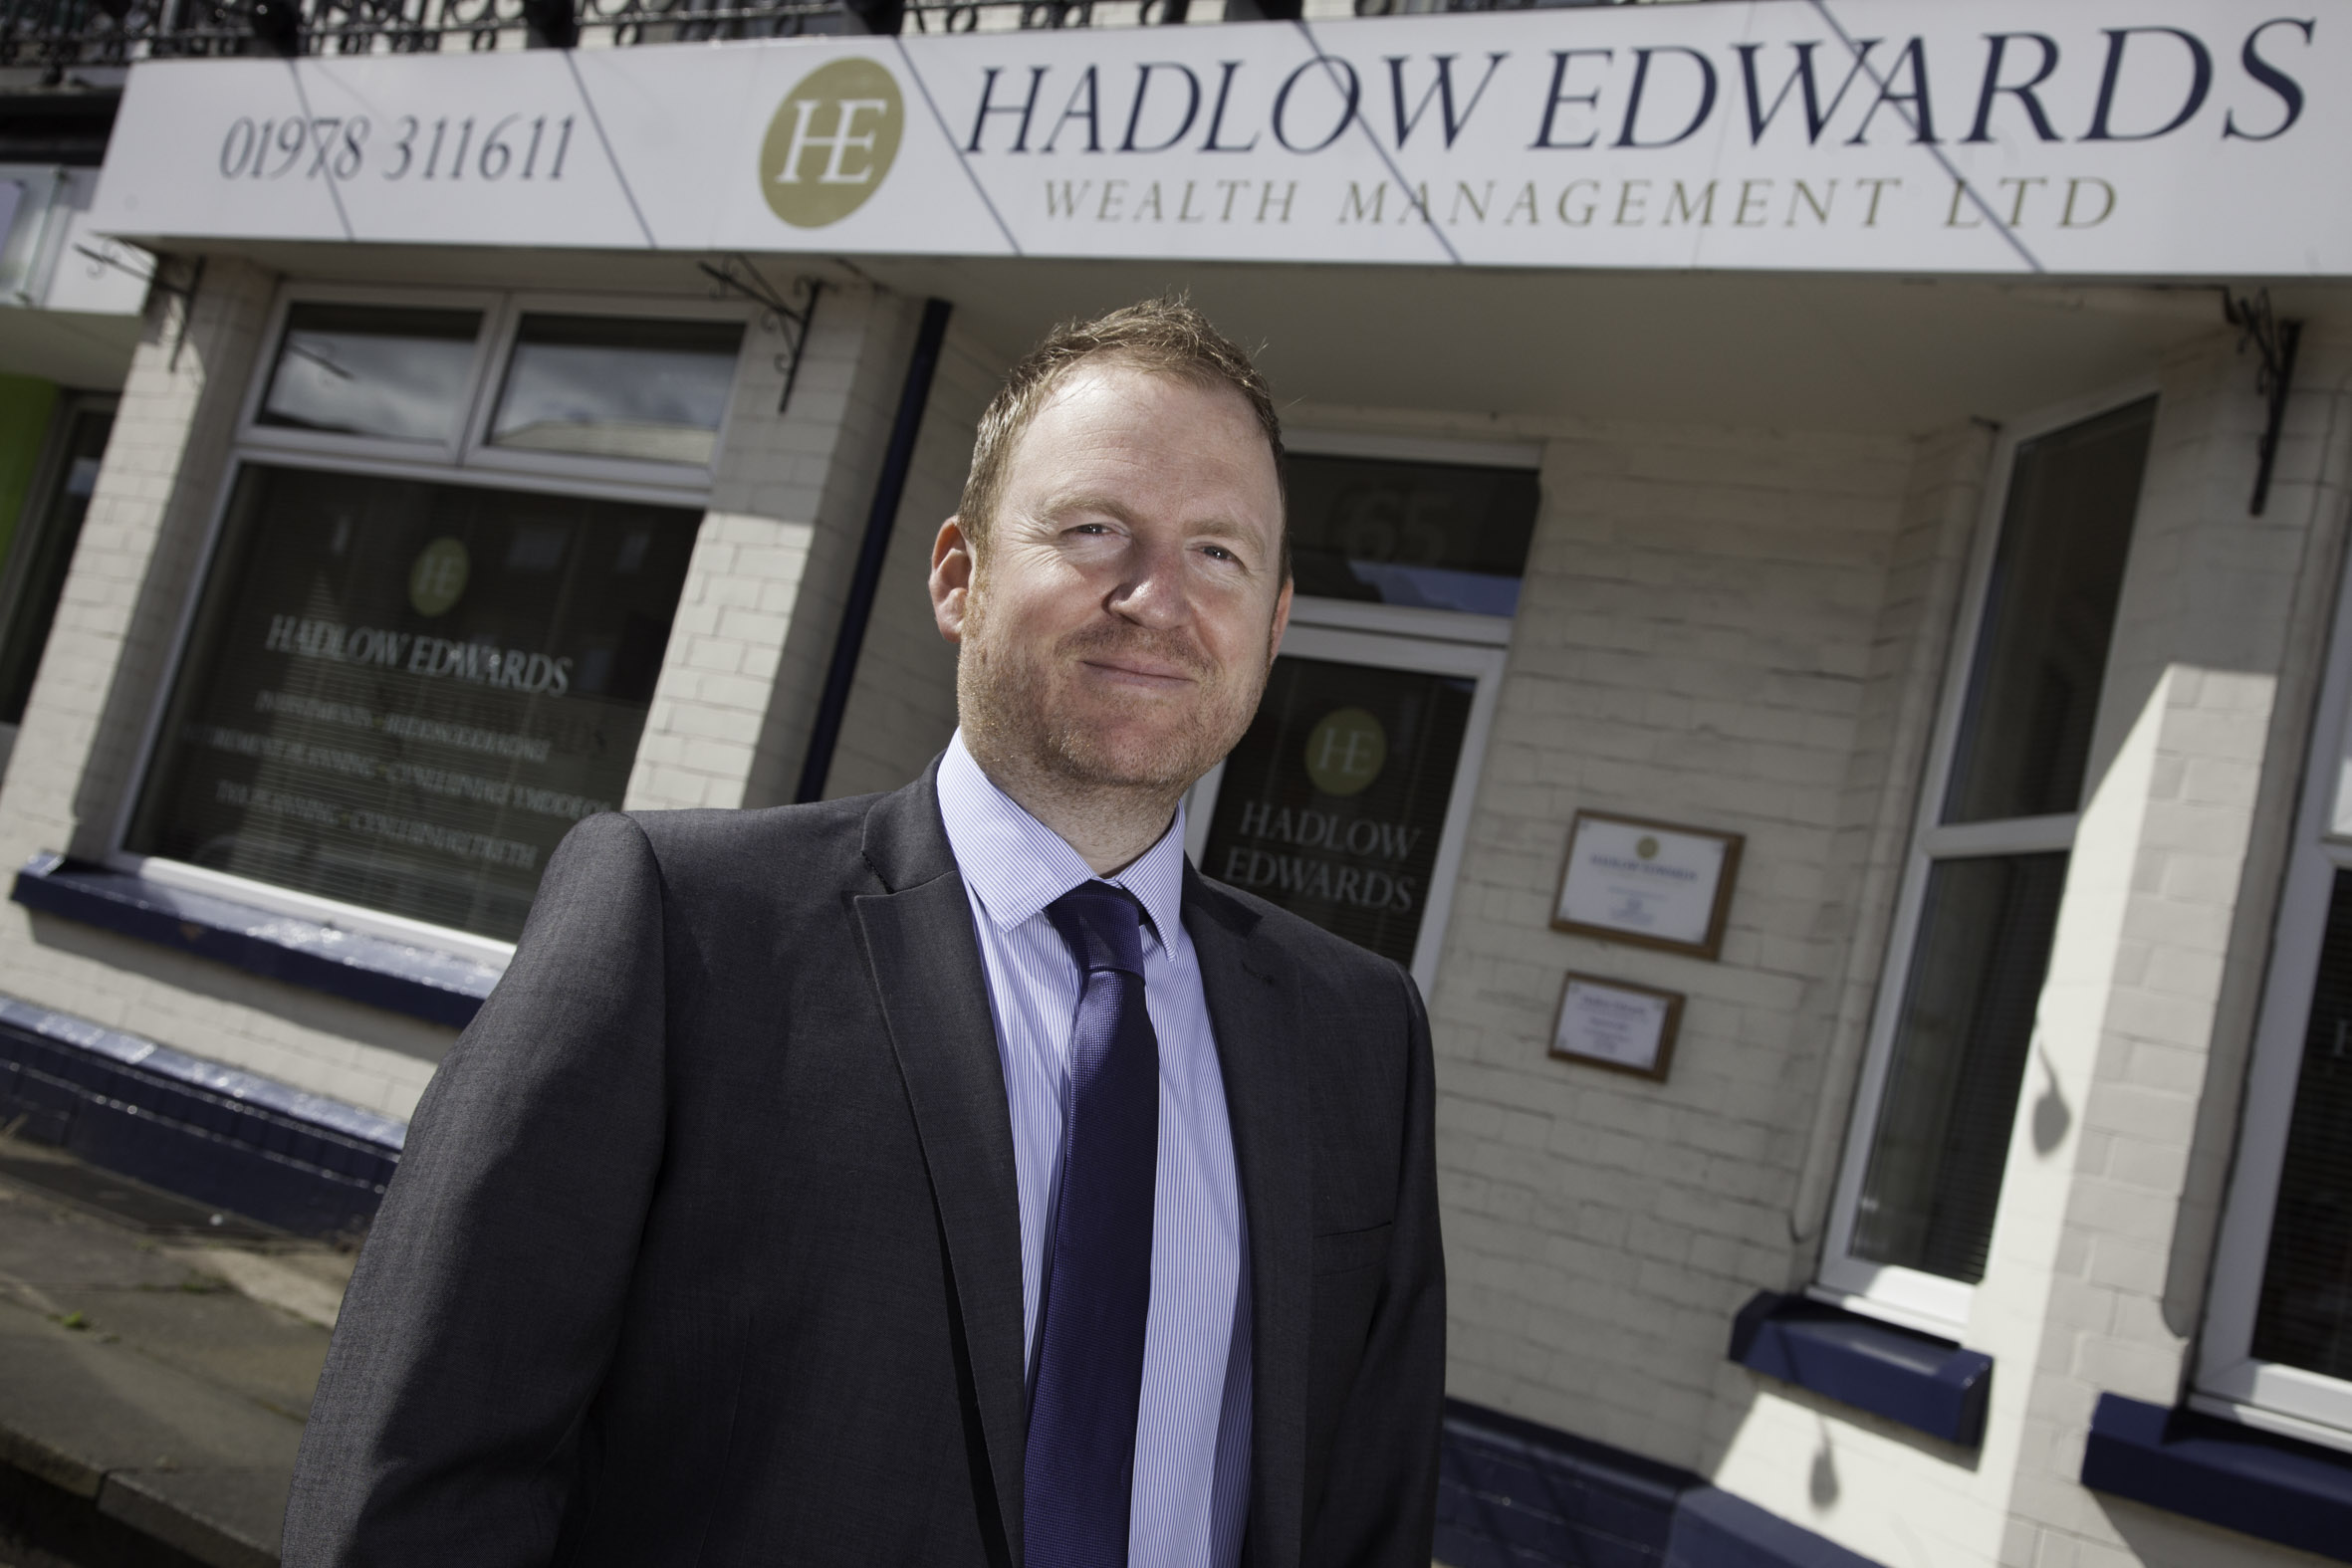 Hadlow Edwards Pictured is mortgage advisor Johnathan Peatfield.